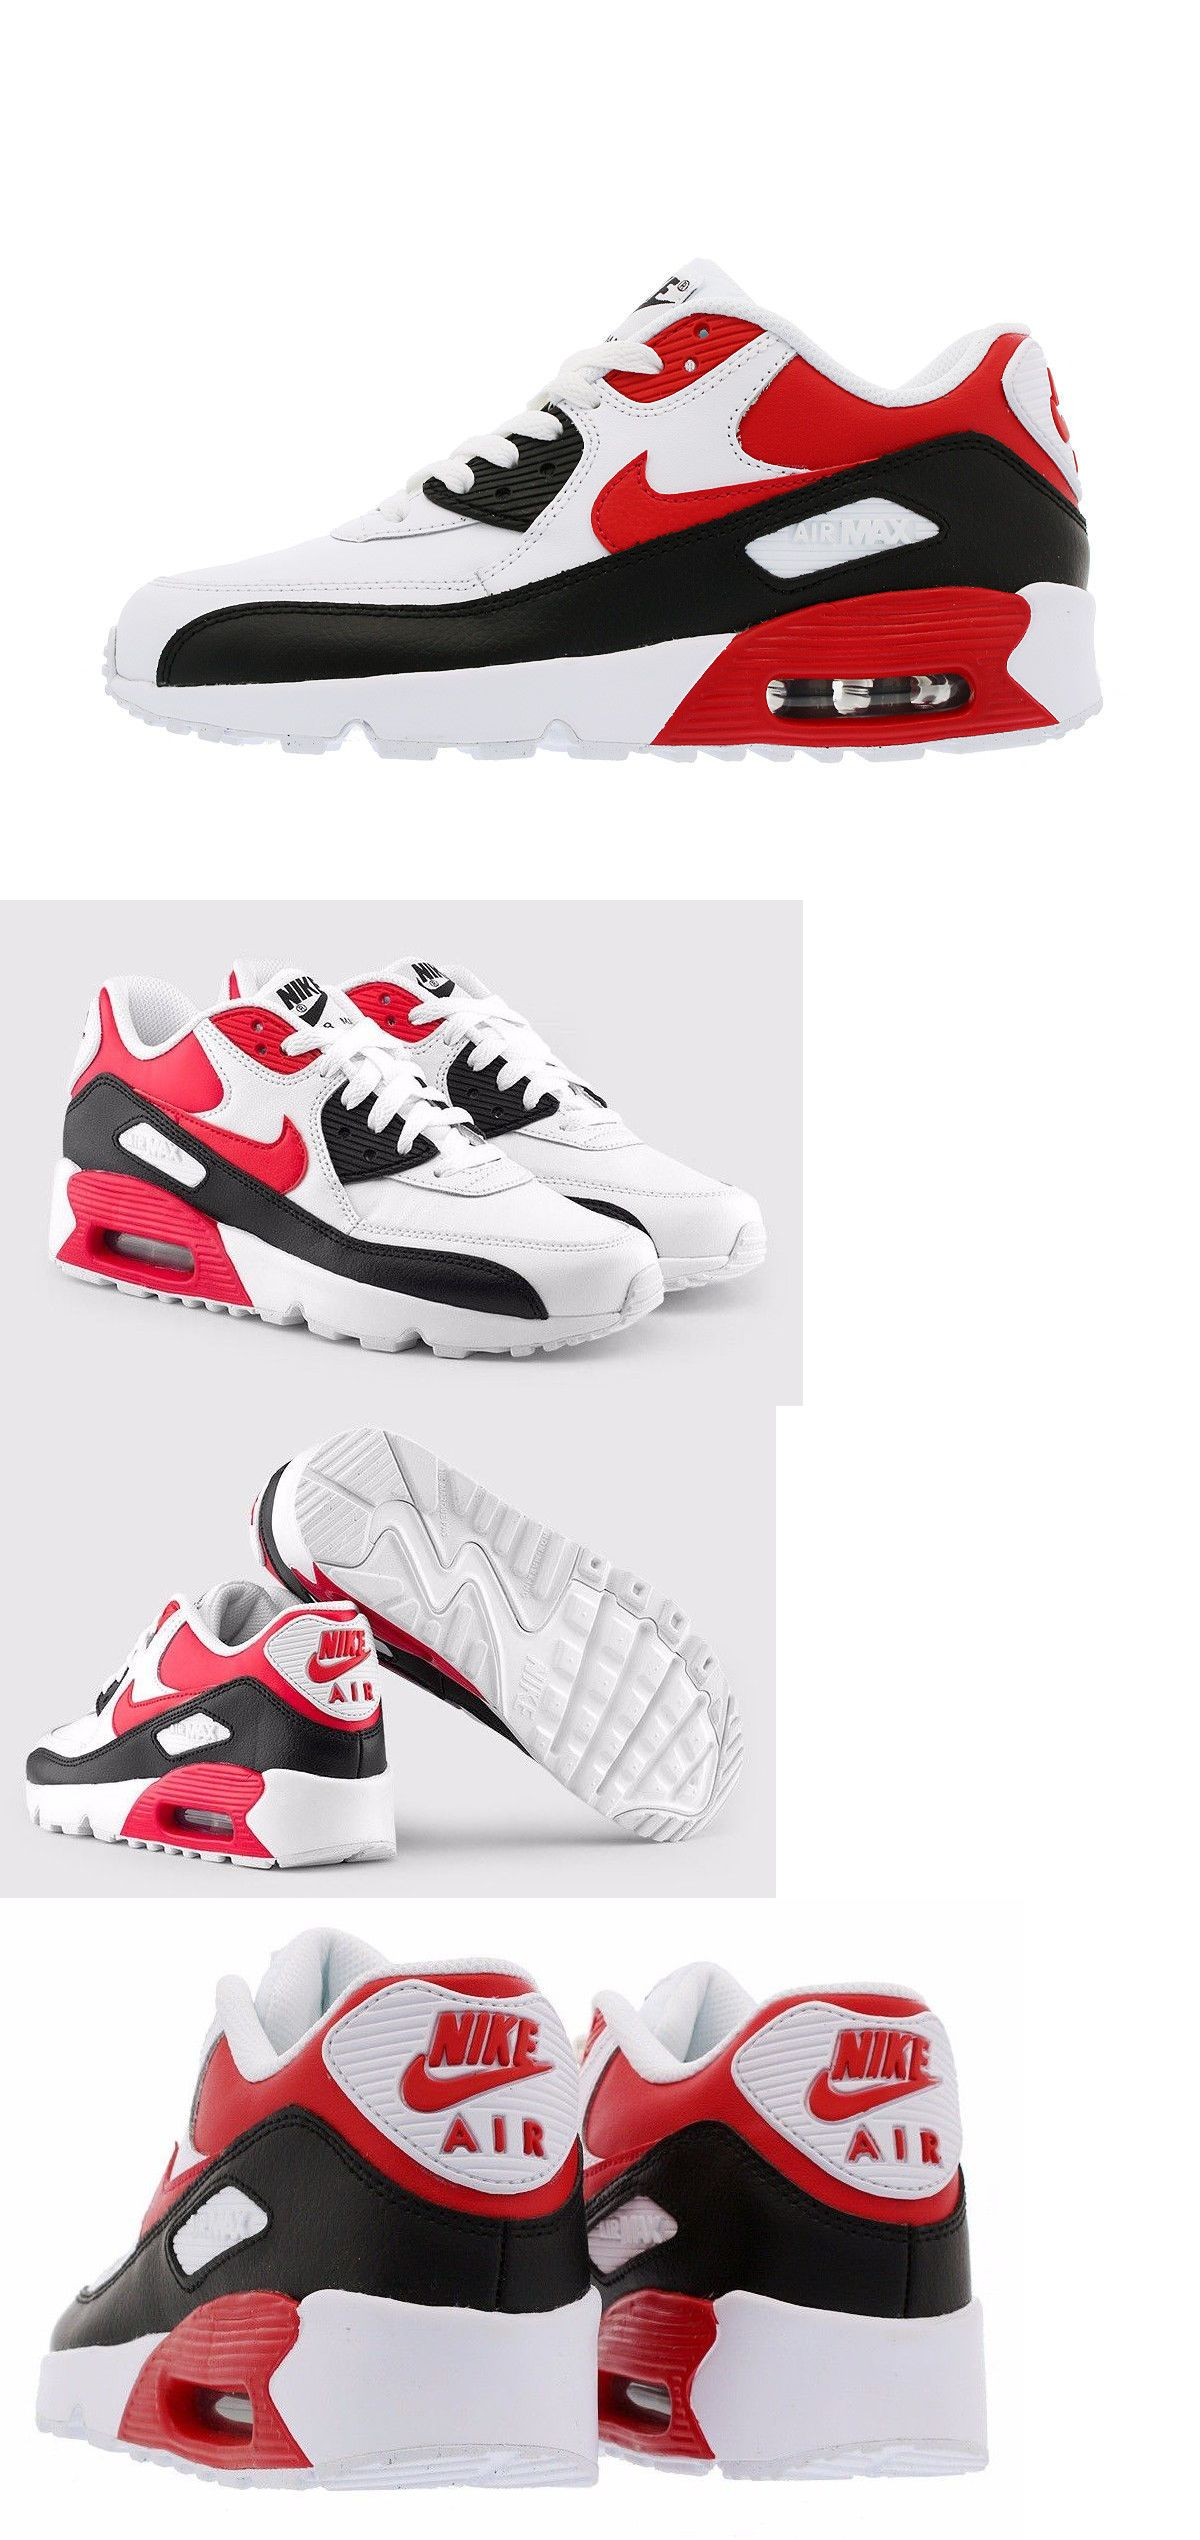 Girls Shoes 57974: Nike Air Max 90 Leather Shoes Kids Boys Girls Gs Size 7Y